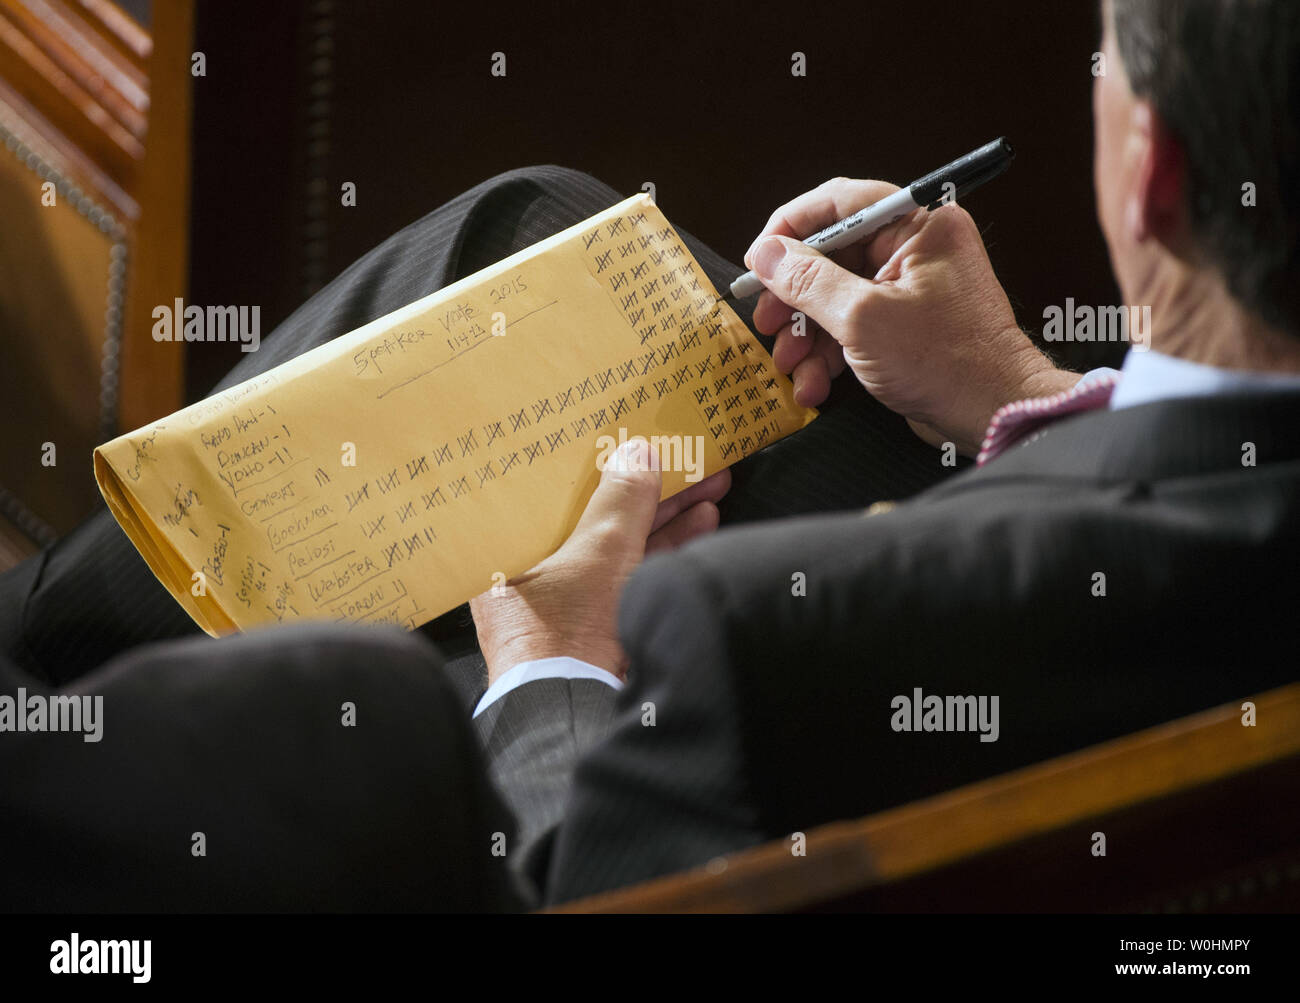 A member of Congress keeps a tally during the election for Speaker of the House during the first day of the 114th Congress, inside the House Chambers of the U.S. Capitol Building in Washington, D.C. on January 6, 2015. Speaker John Boehner, R-OH, retained his position despite a Tea Party challenge. Photo by Kevin Dietsch/UPI - Stock Image